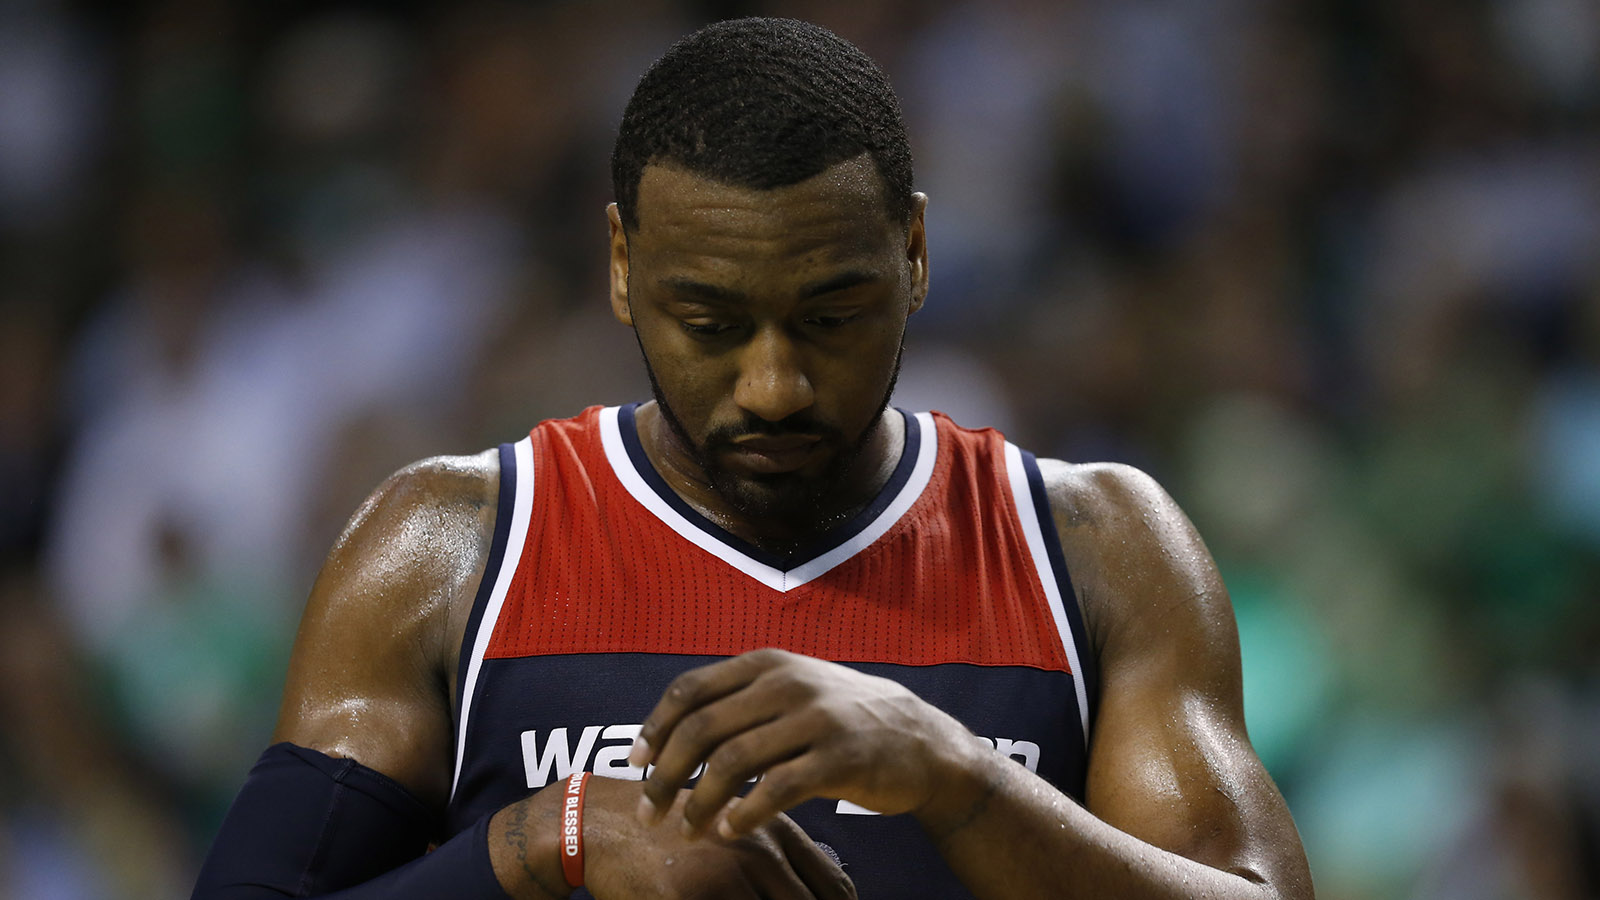 May 2, 2017; Boston, MA, USA; Washington Wizards point guard John Wall (2) reacts during the fourth quarter in game two of the second round of the 2017 NBA Playoffs against the Boston Celtics at TD Garden. Mandatory Credit: Greg M. Cooper-USA TODAY Sports